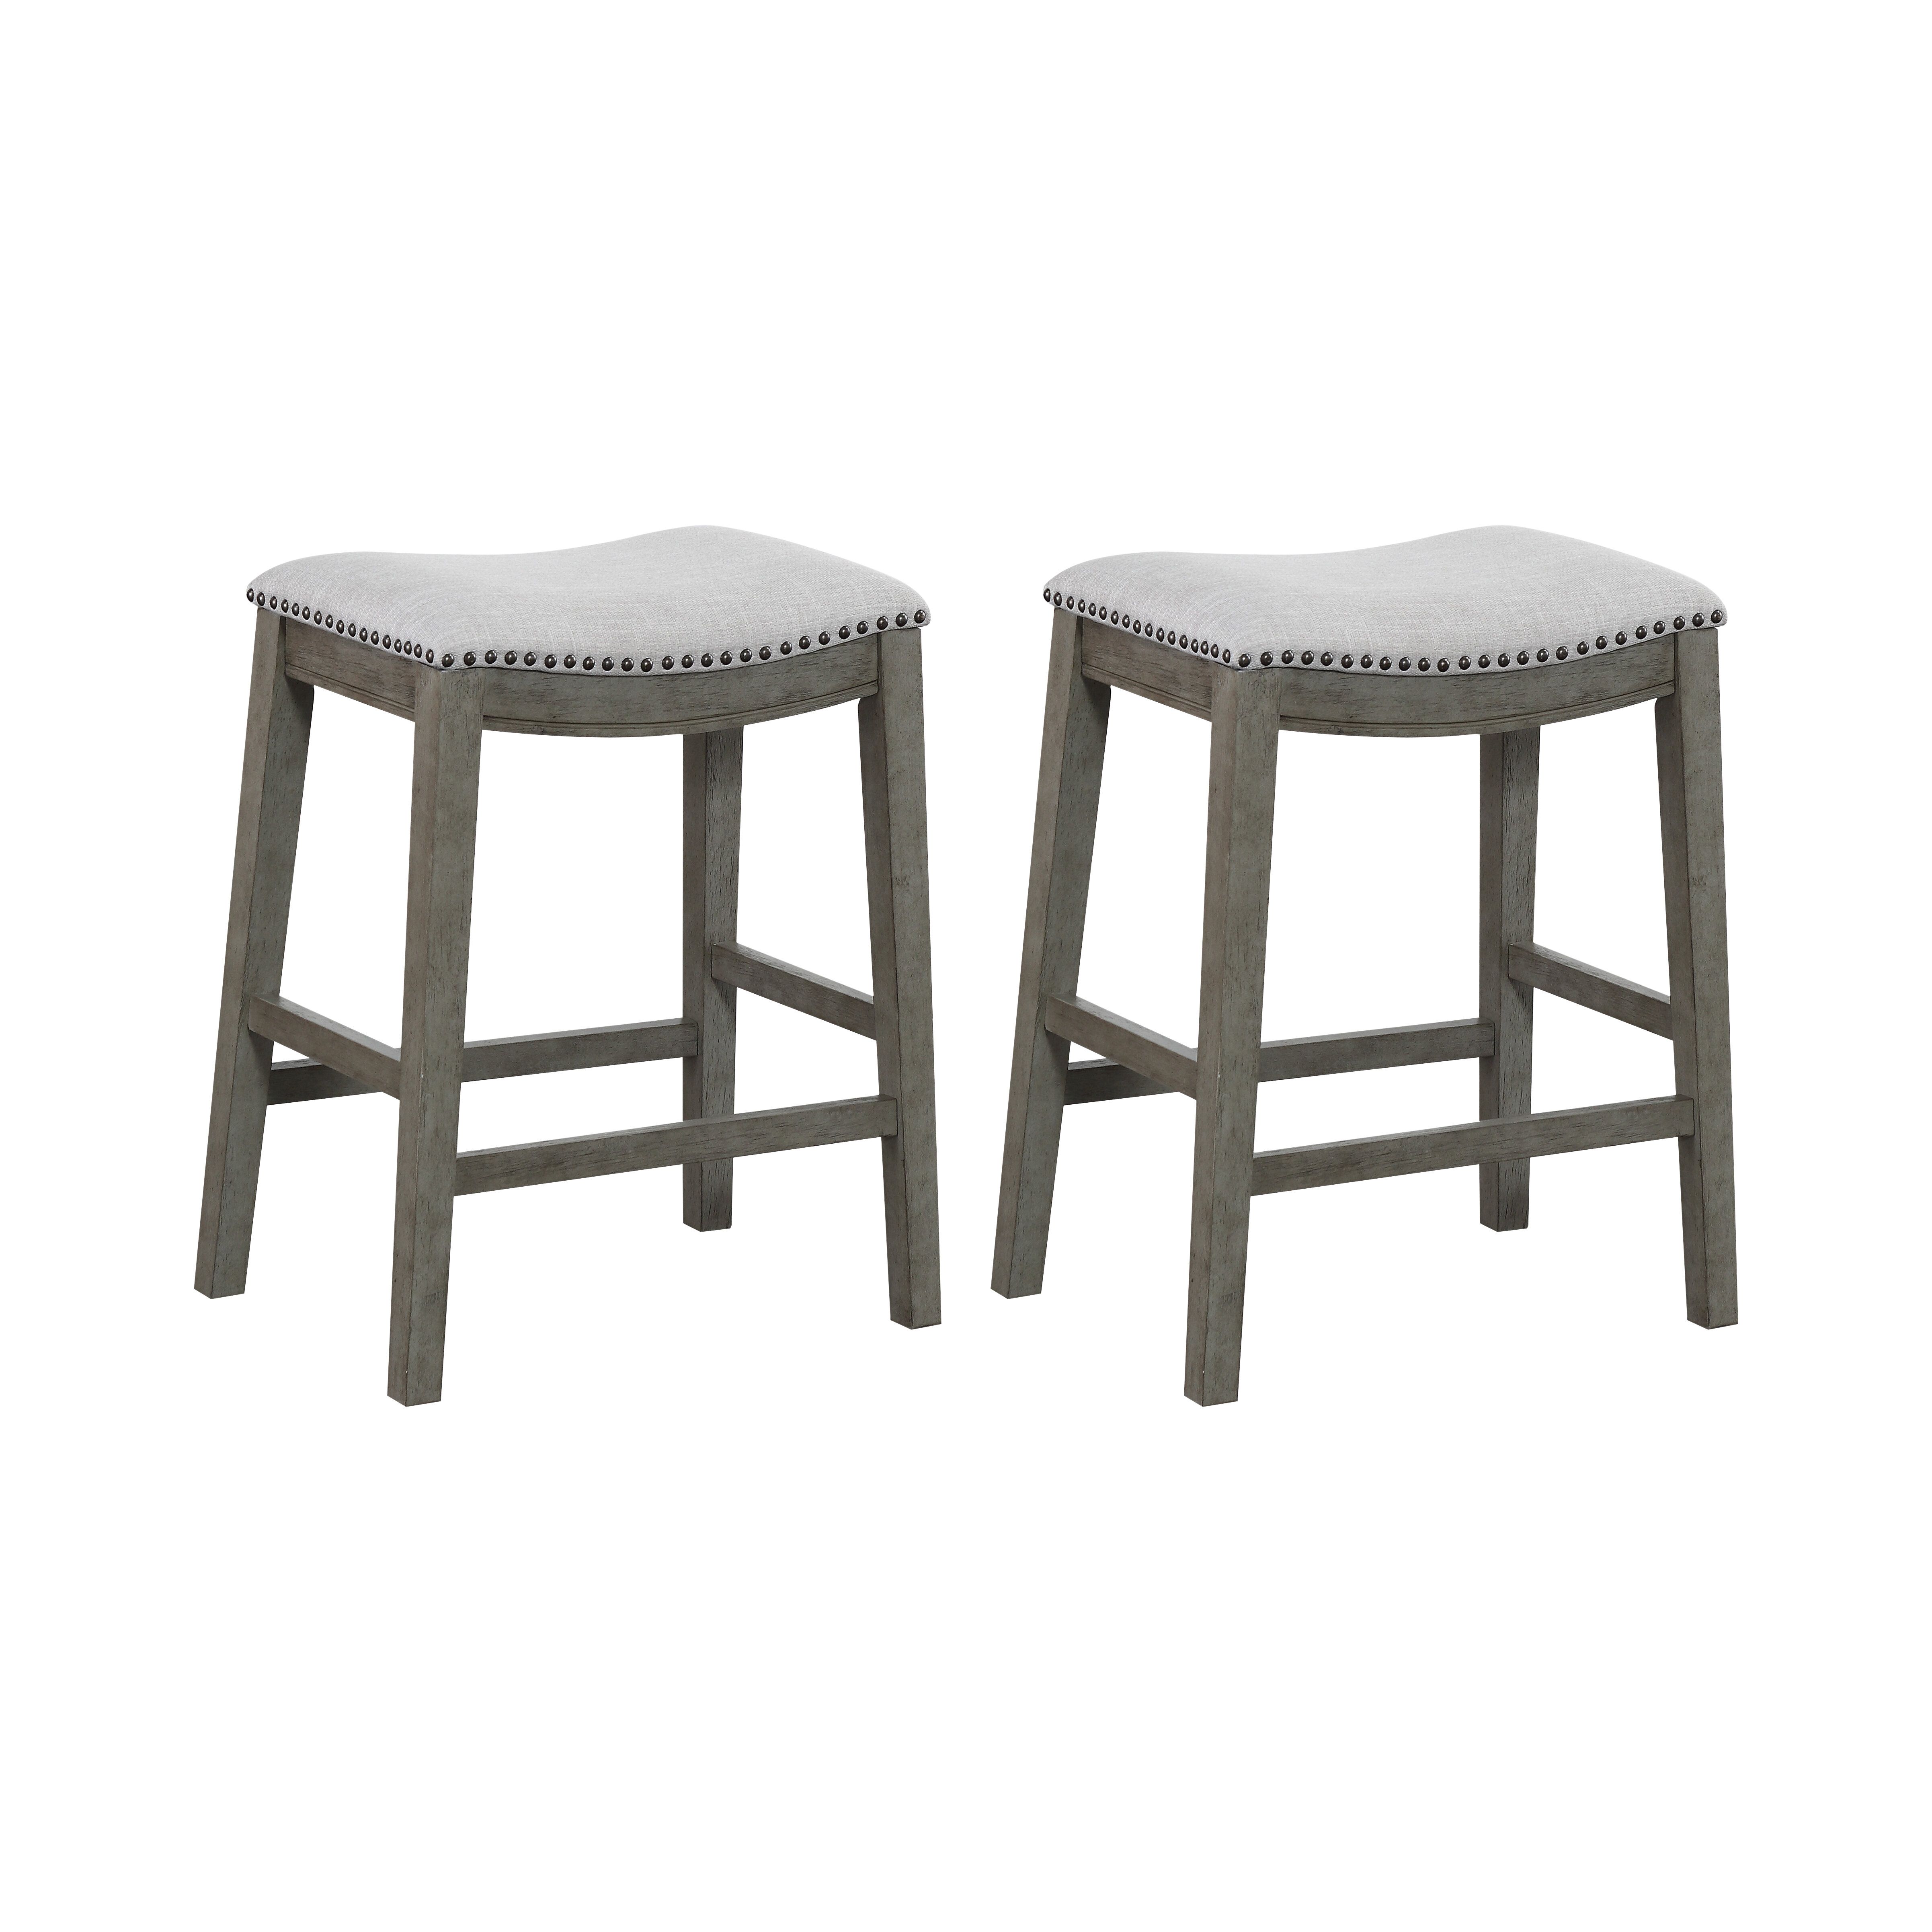 Image of: Backless Counter 24 27 Bar Stools Counter Stools You Ll Love In 2020 Wayfair